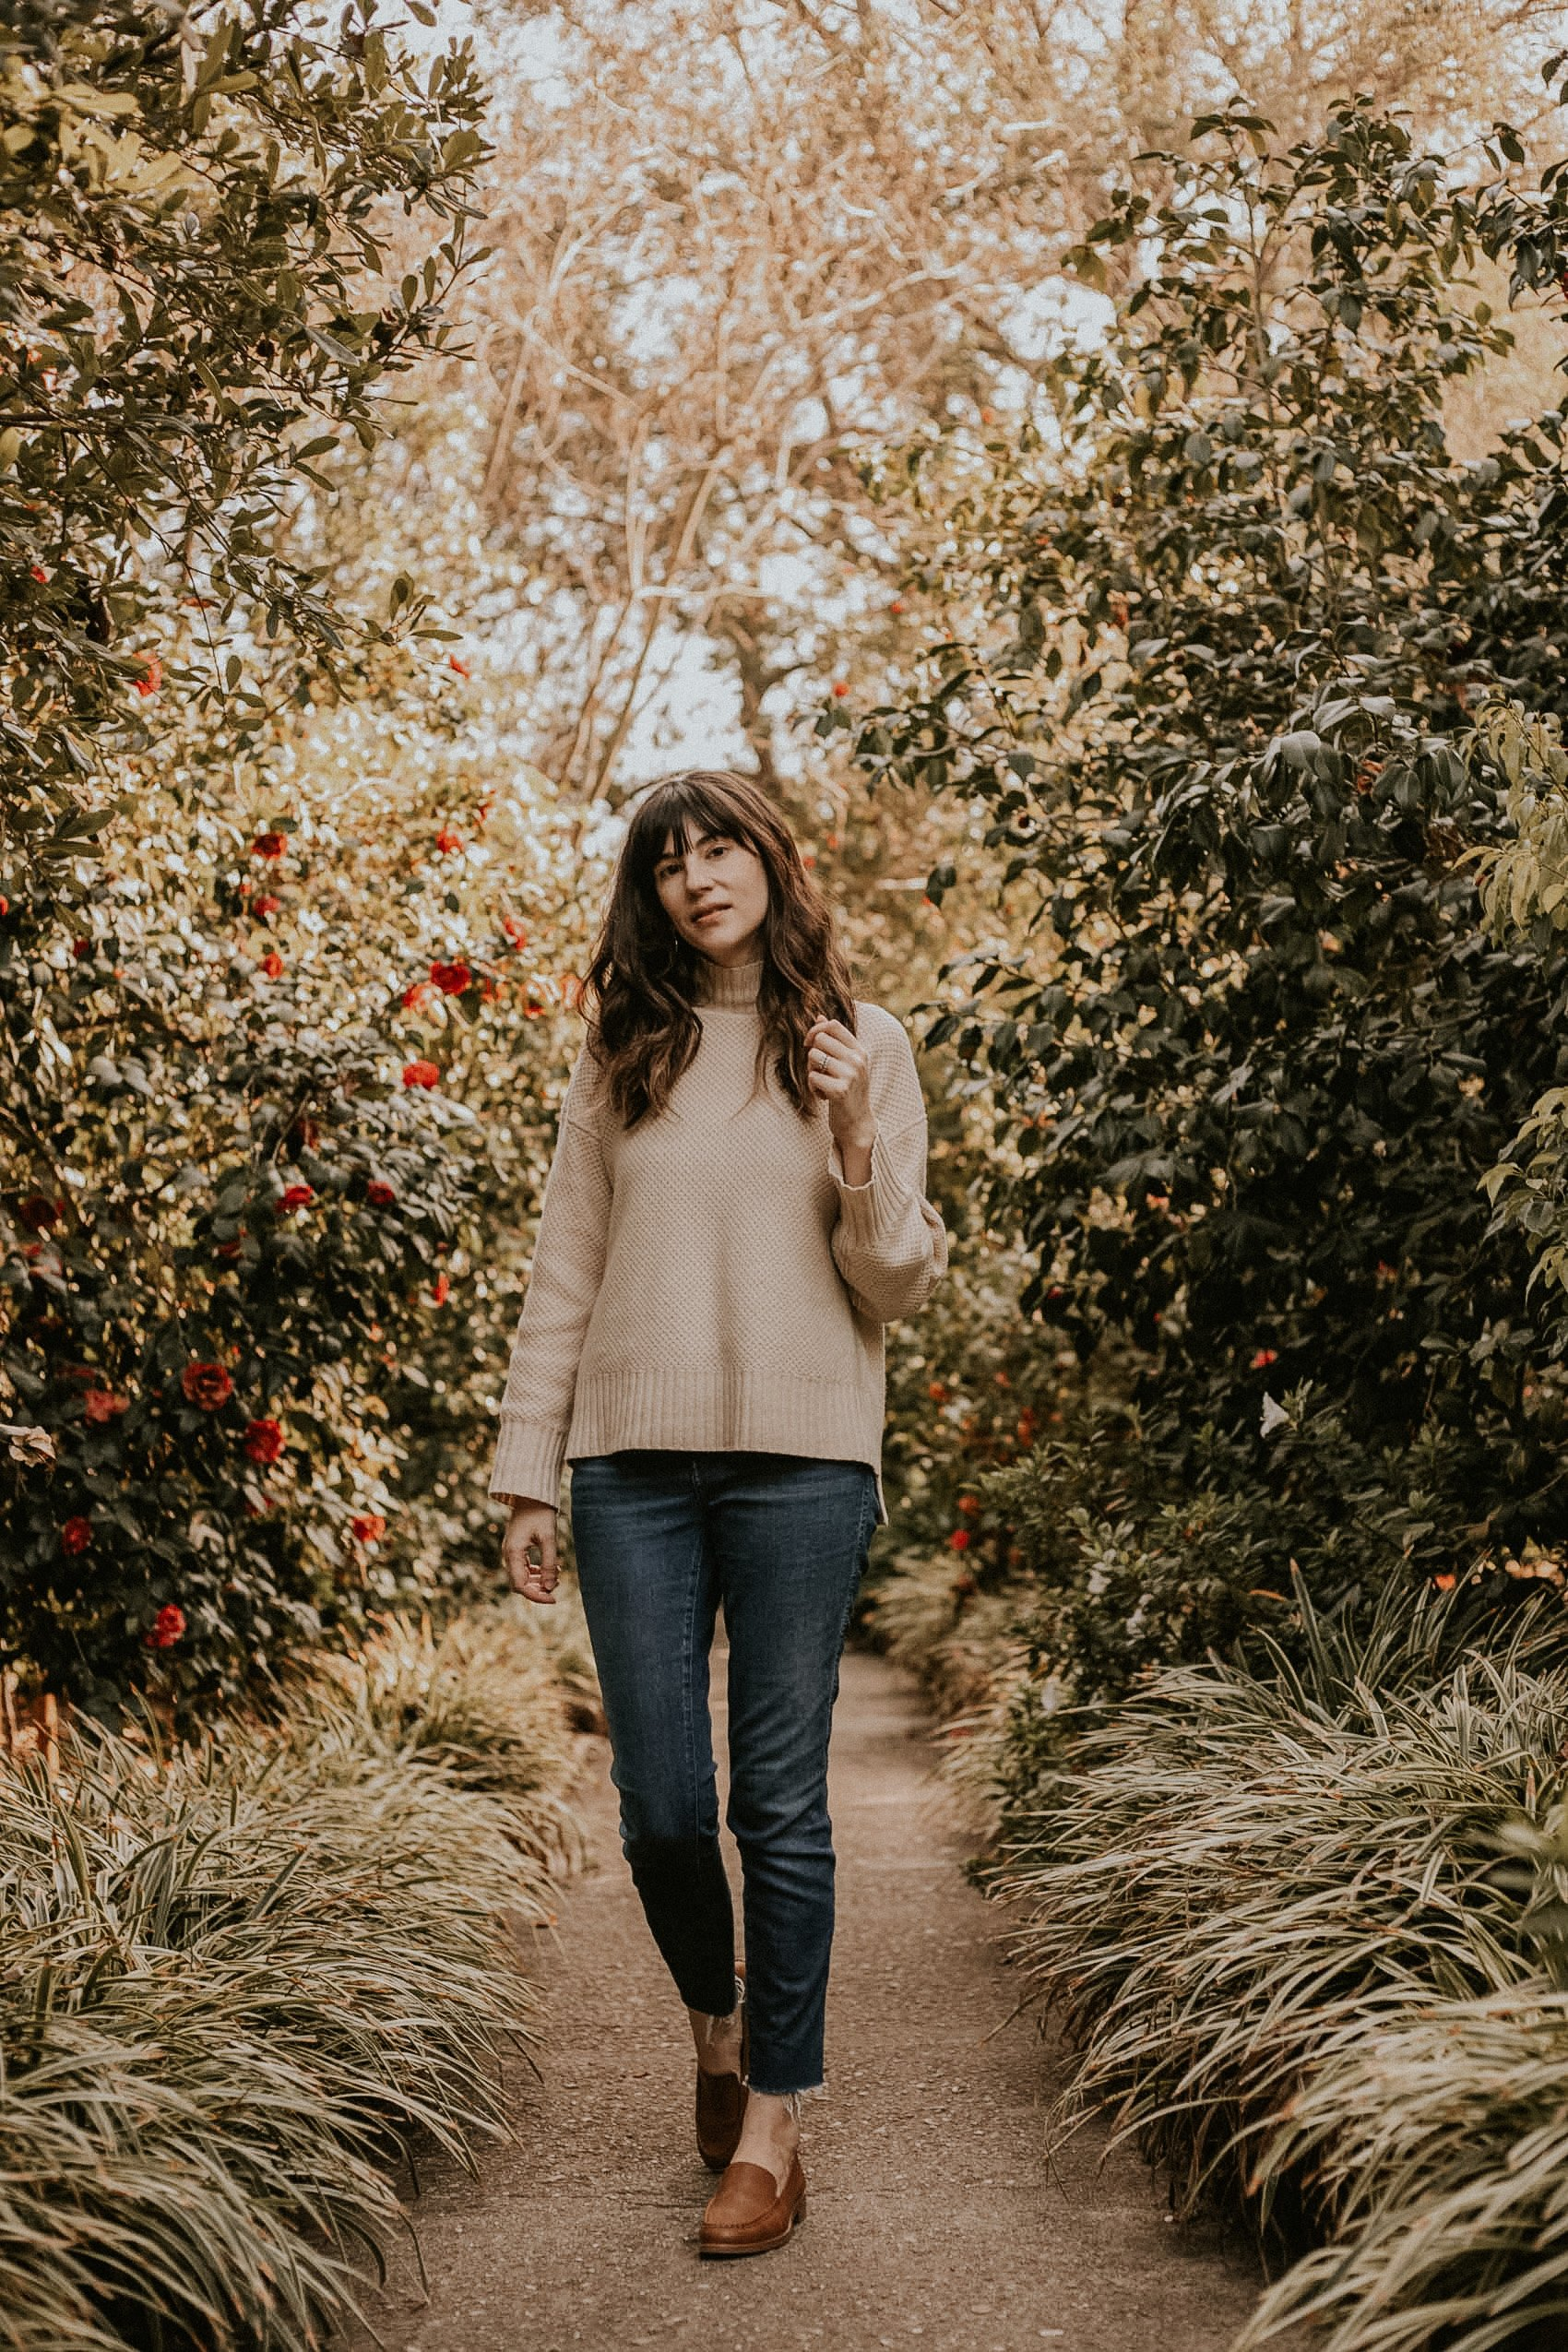 Everlane Oversized Stroopwafel Turtleneck Sweater Review and New Modern Loafer Review, Everlane outfit on fashion blogger in woods at Huntington Garden